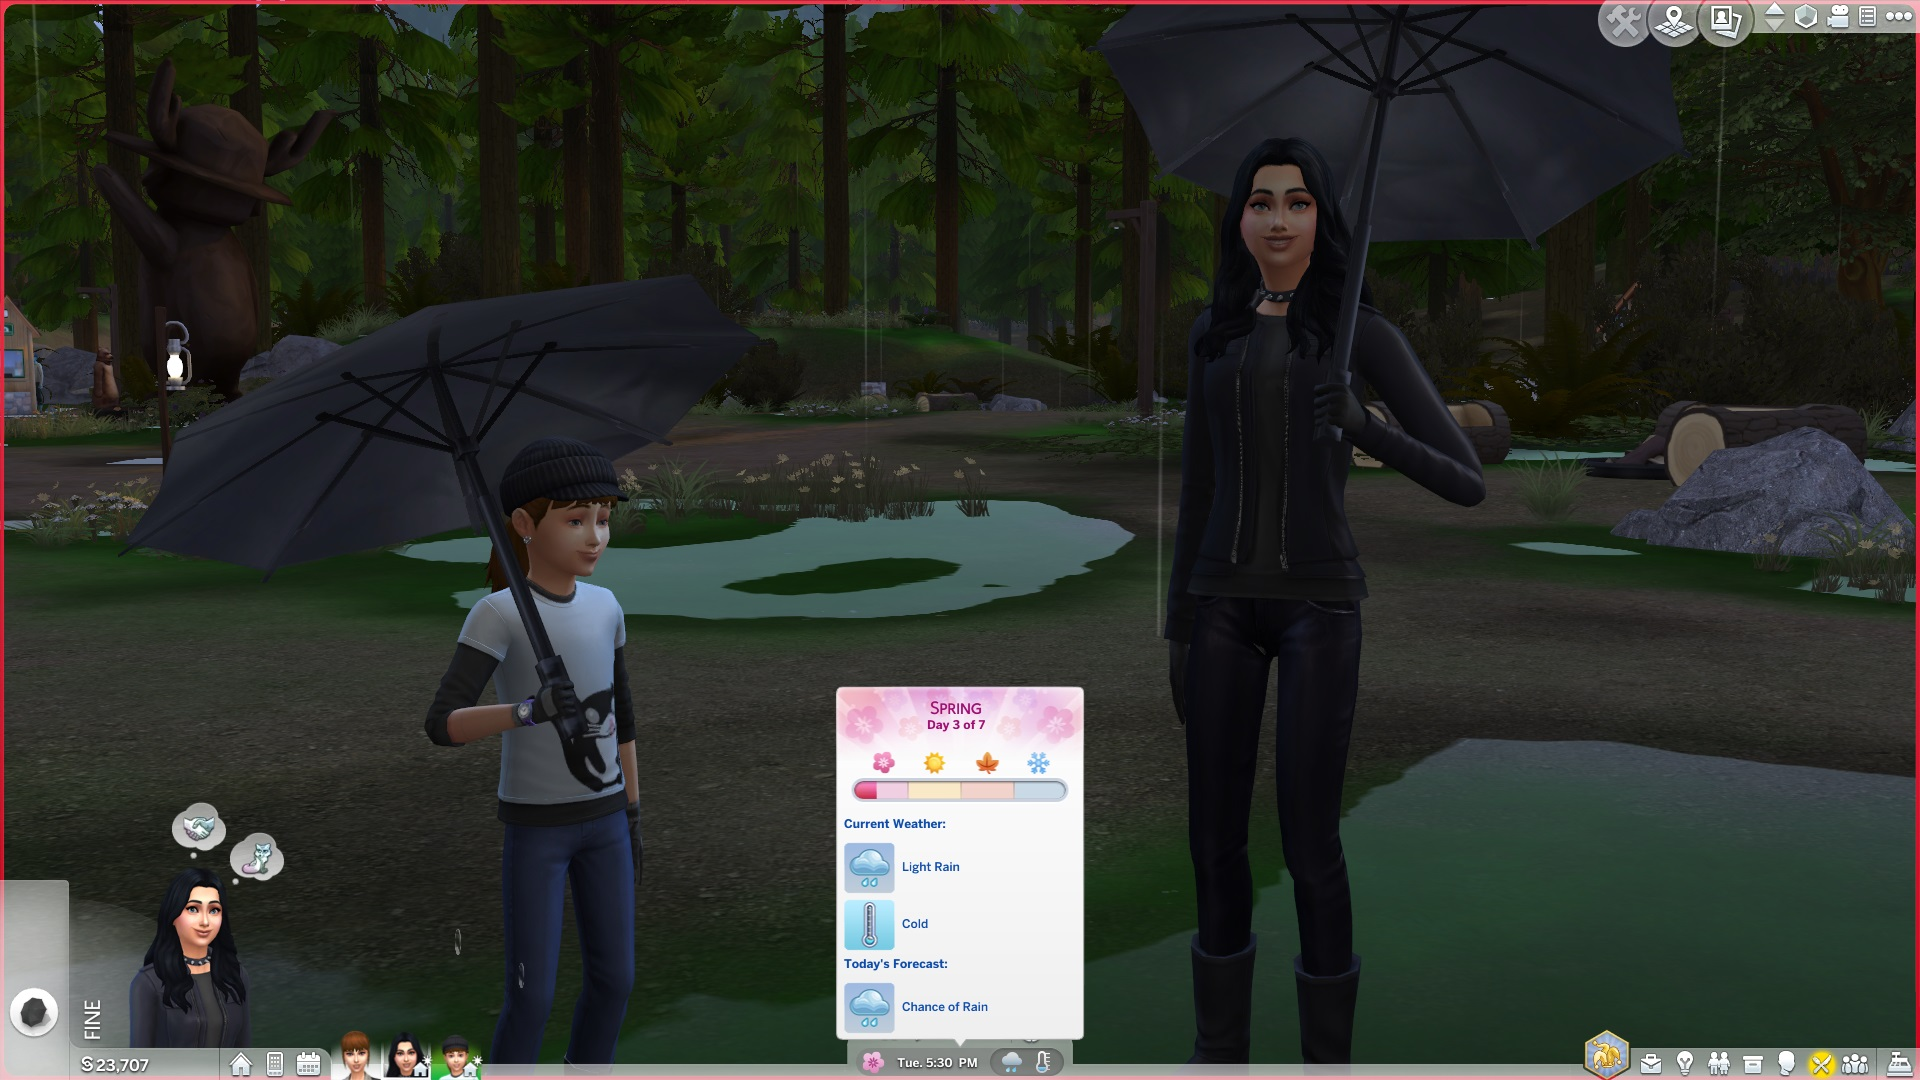 The Sims 4 Mods: Sims 4 Trait, Vampire and Hair Mods - The